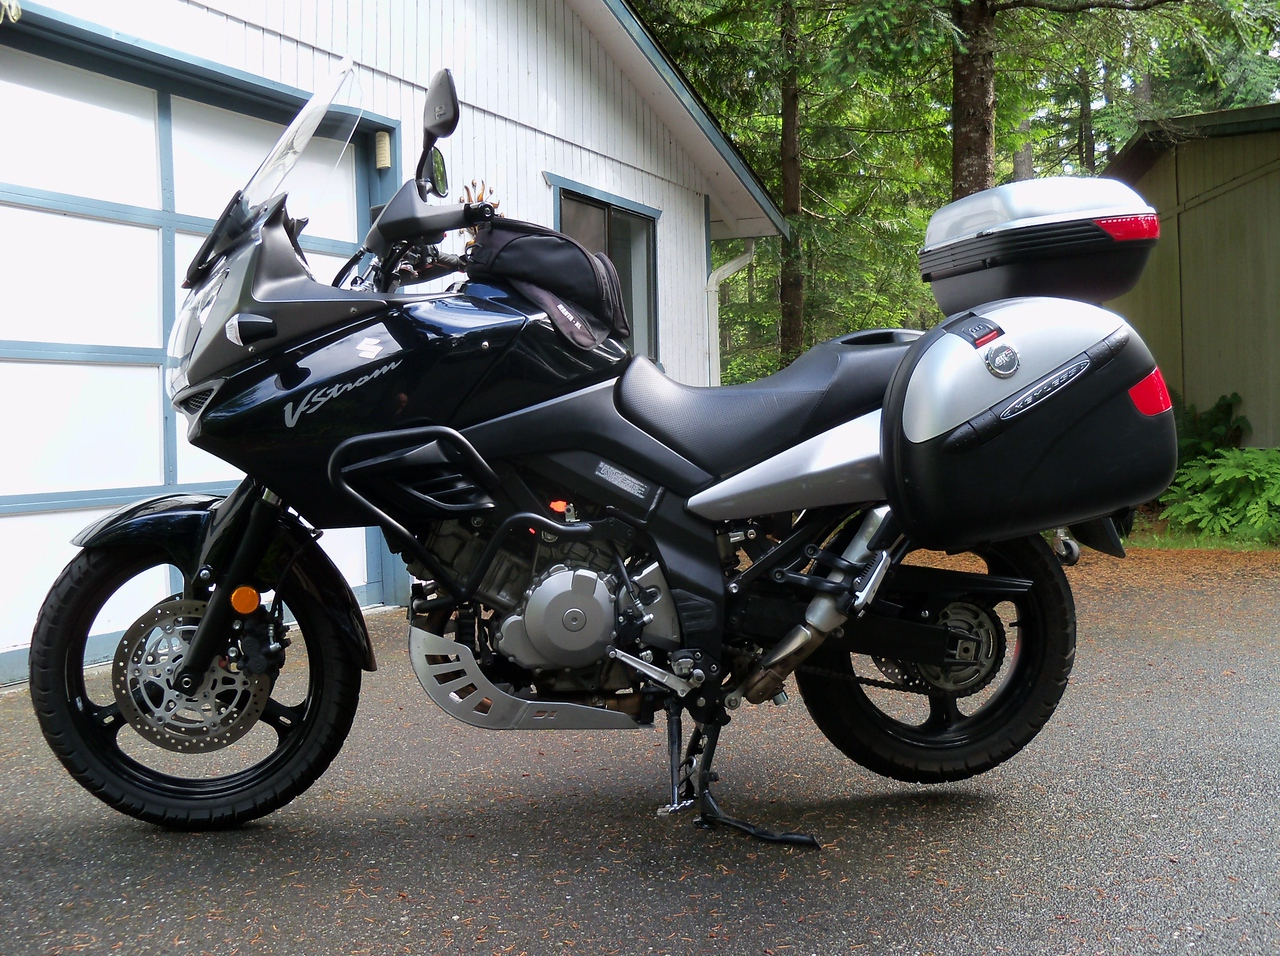 That's it, our new Adventure Tour Motorcycle... I always like the V-Strom... I rode one back in 2006 and almost bought it... This one is a 2008 with lots of goodies...